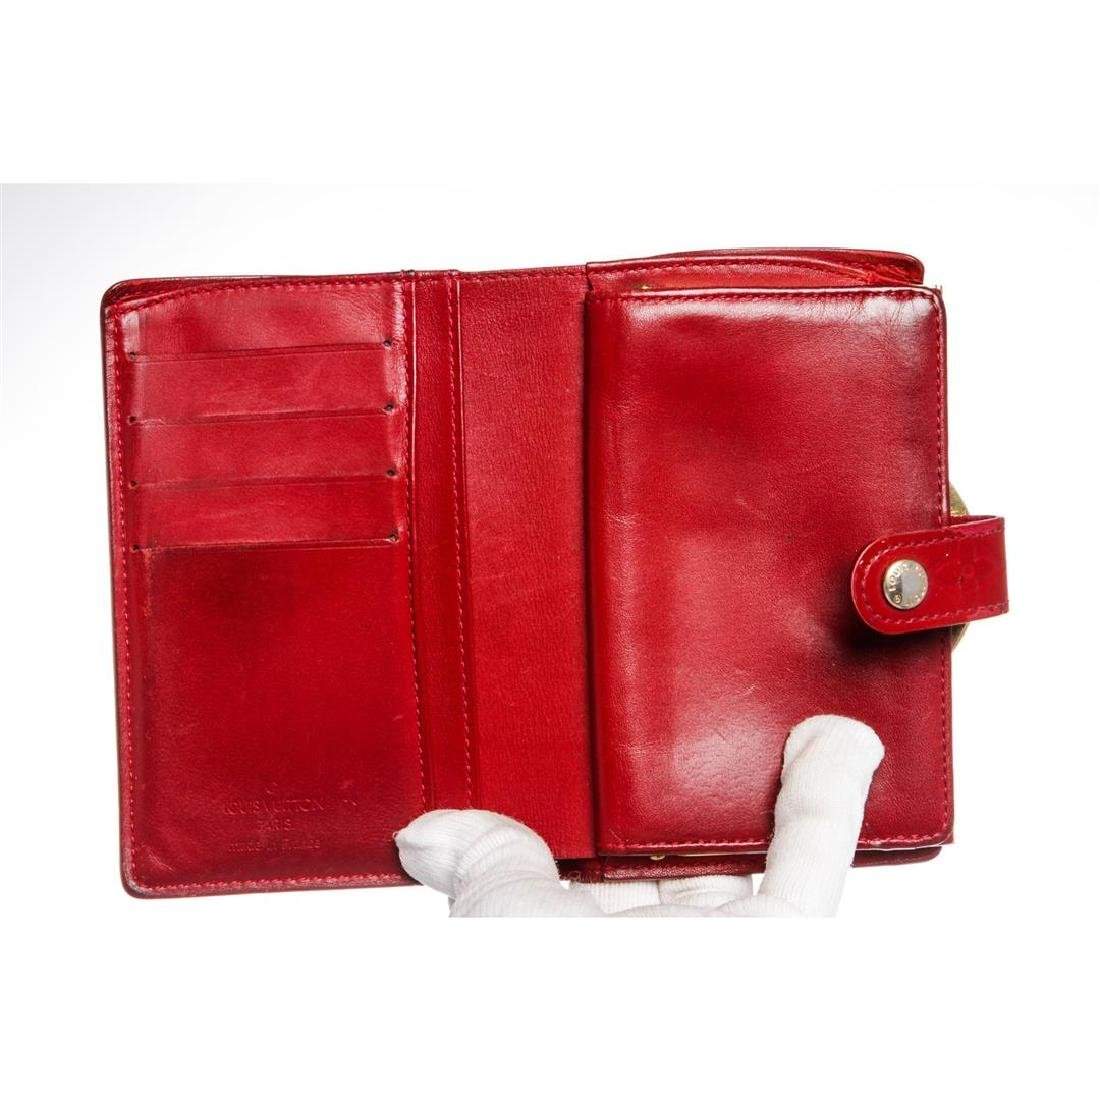 Louis Vuitton Red Vernis Monogram French Wallet - 5